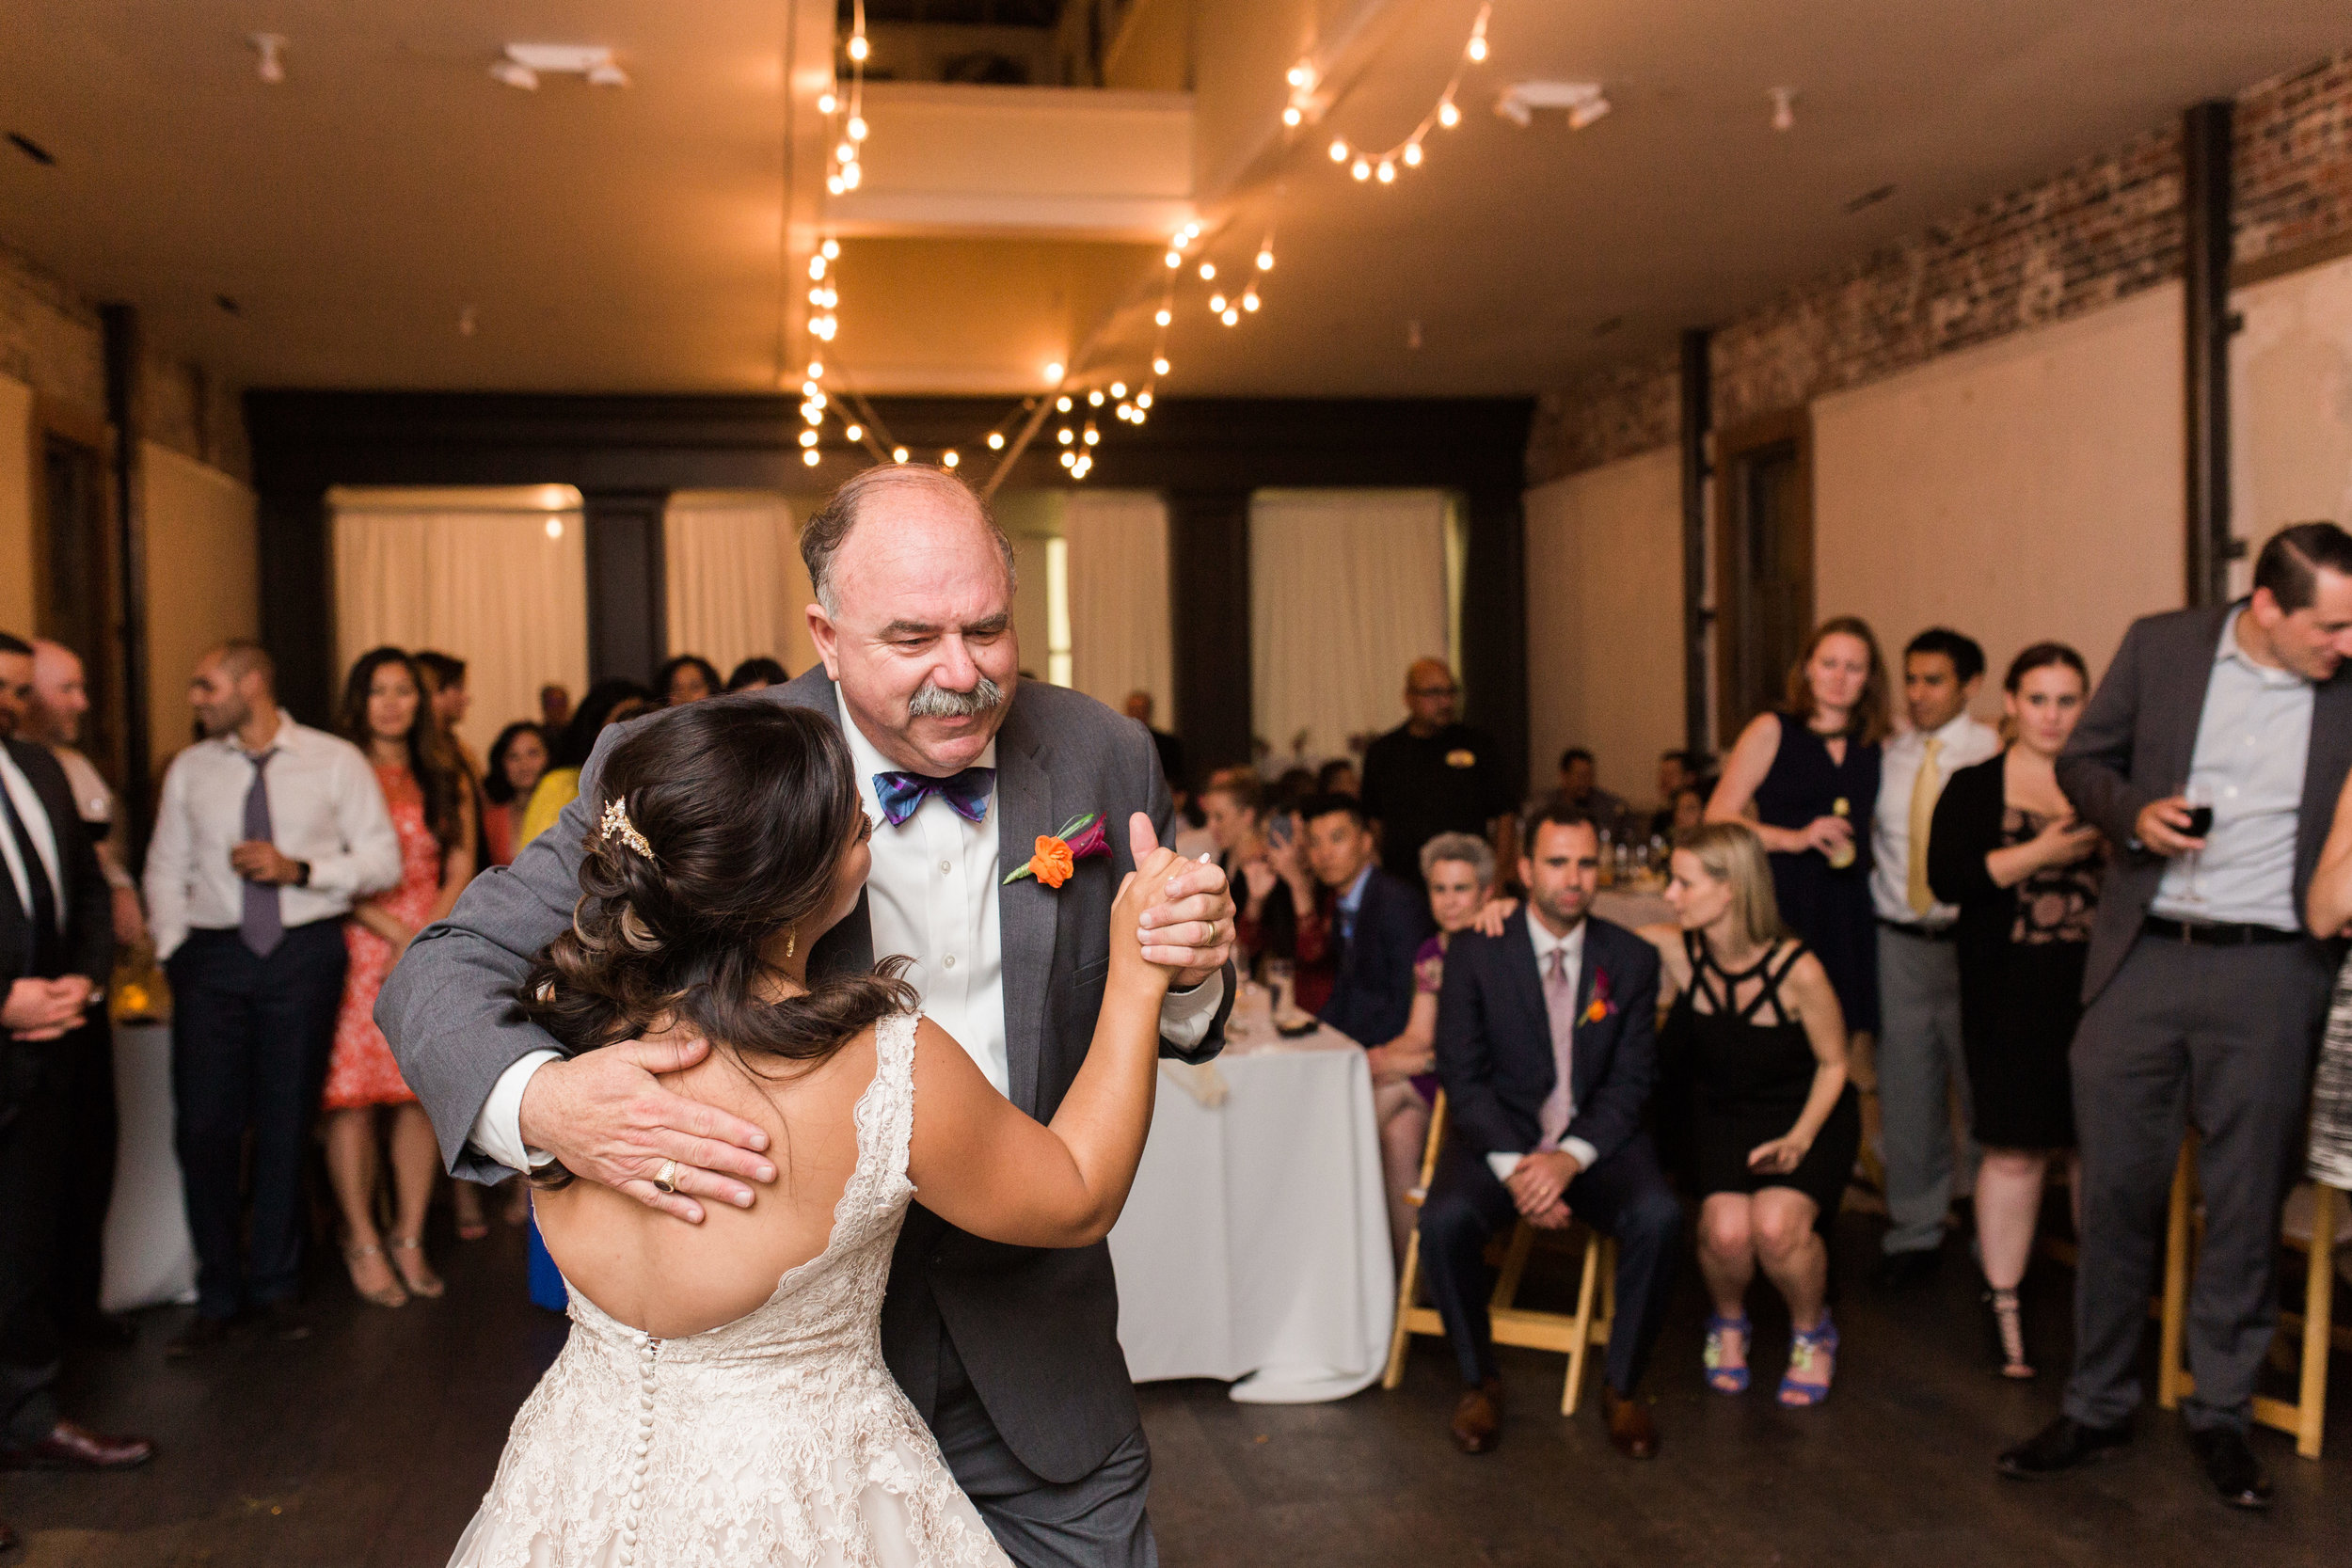 style-inspired-wedding-at-firehouse-8-in-san-francisco-89.jpg